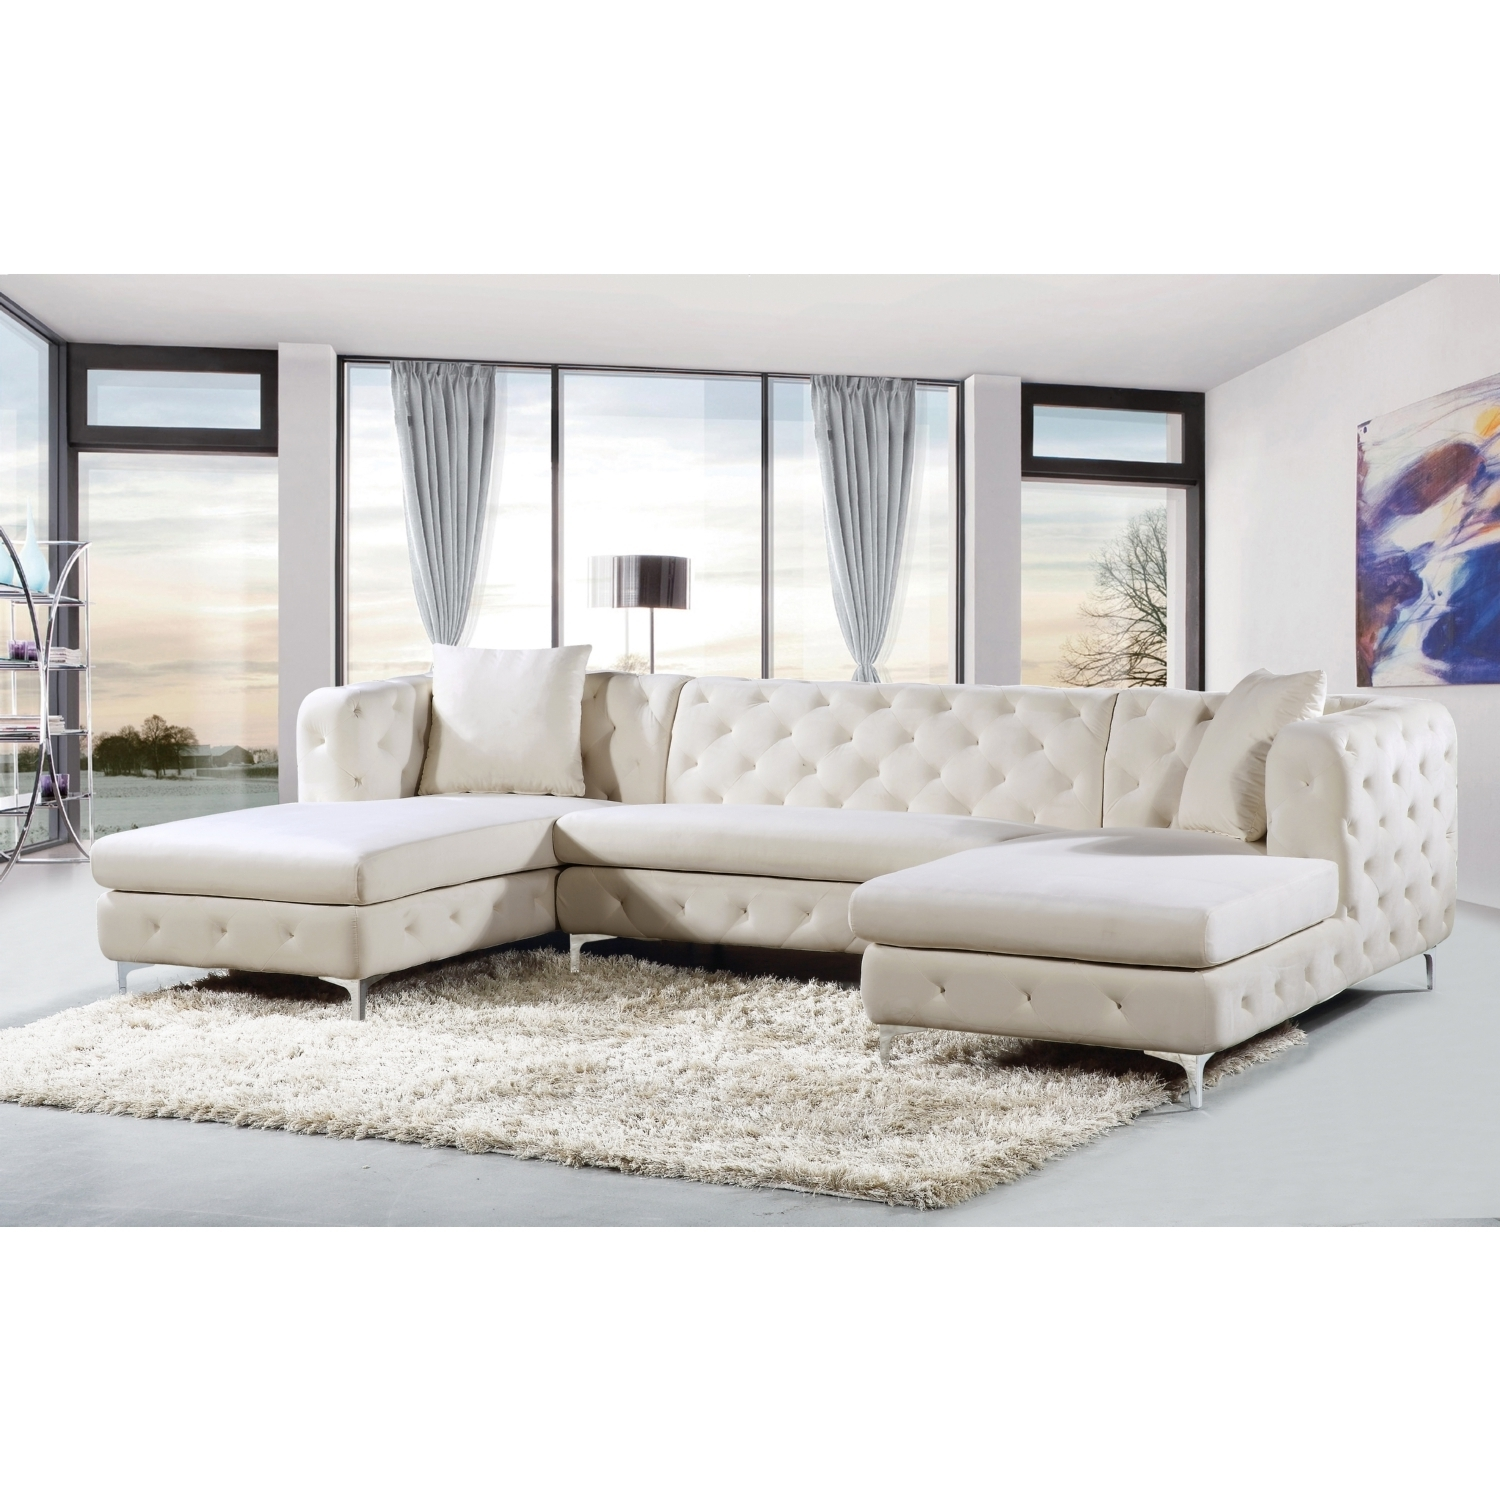 Double Chaise Sofas In Famous Meridian Furniture 664cream Sectional Gail 3 Piece Double Chaise (View 11 of 15)